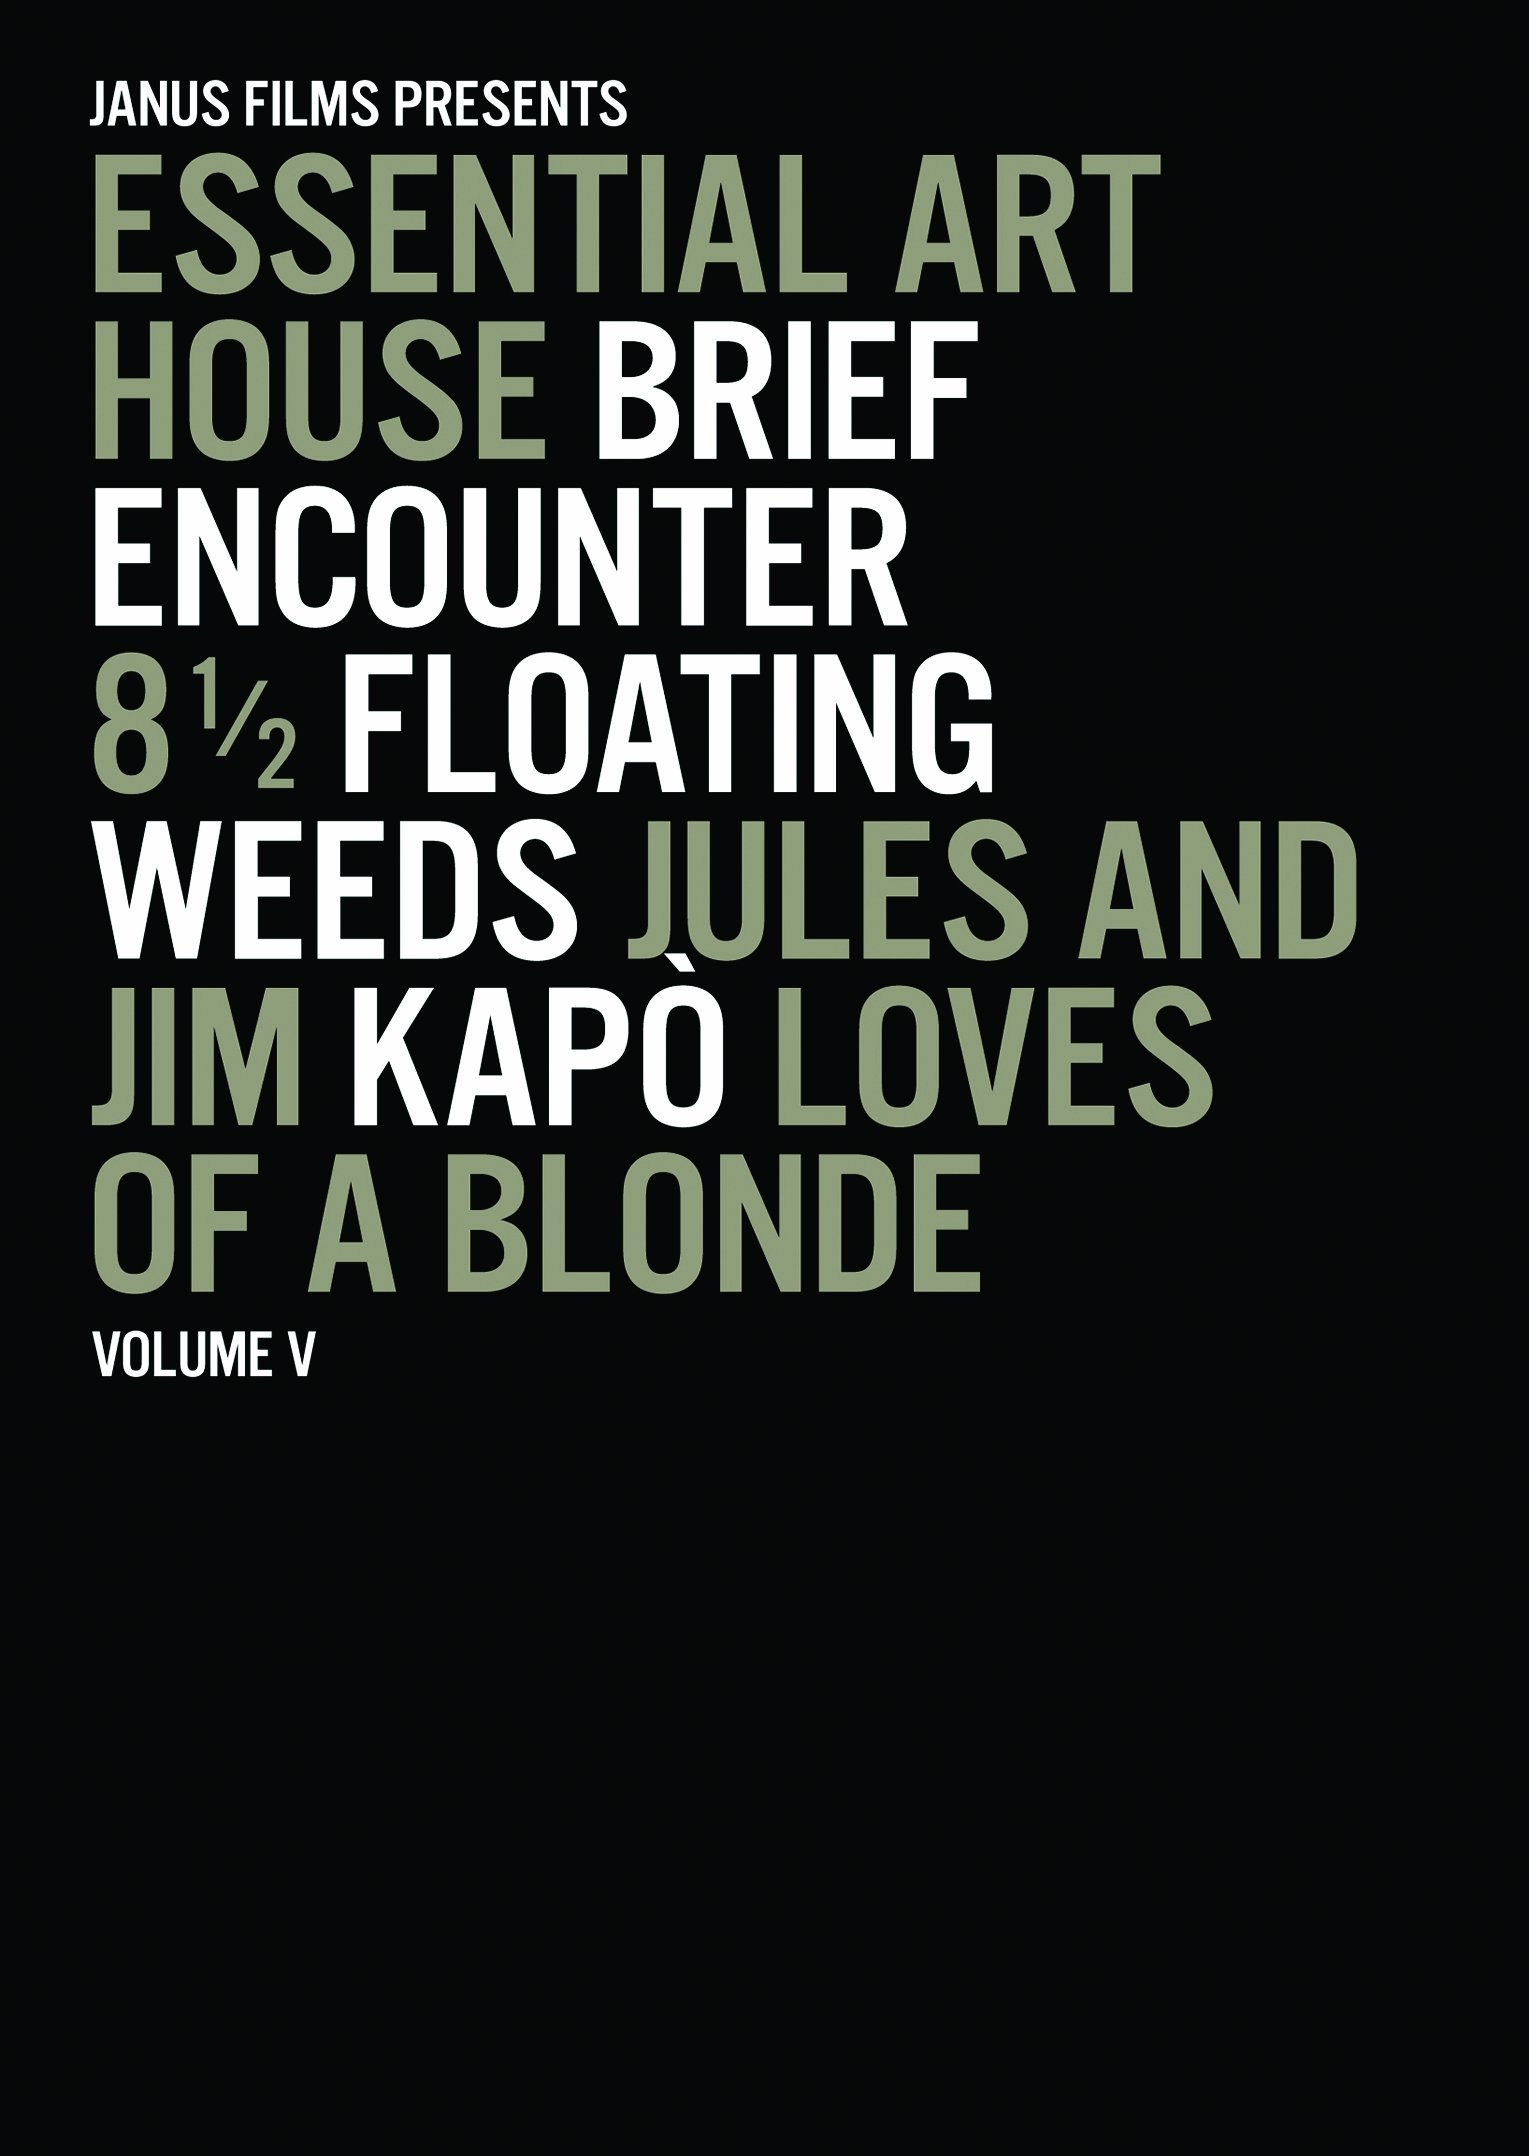 Essential Art House, Volume V (Brief Encounter / 8 1/2 / Floating Weeds / Jules and Jim / Kapo / Loves of a Blonde) by Image Entertainment